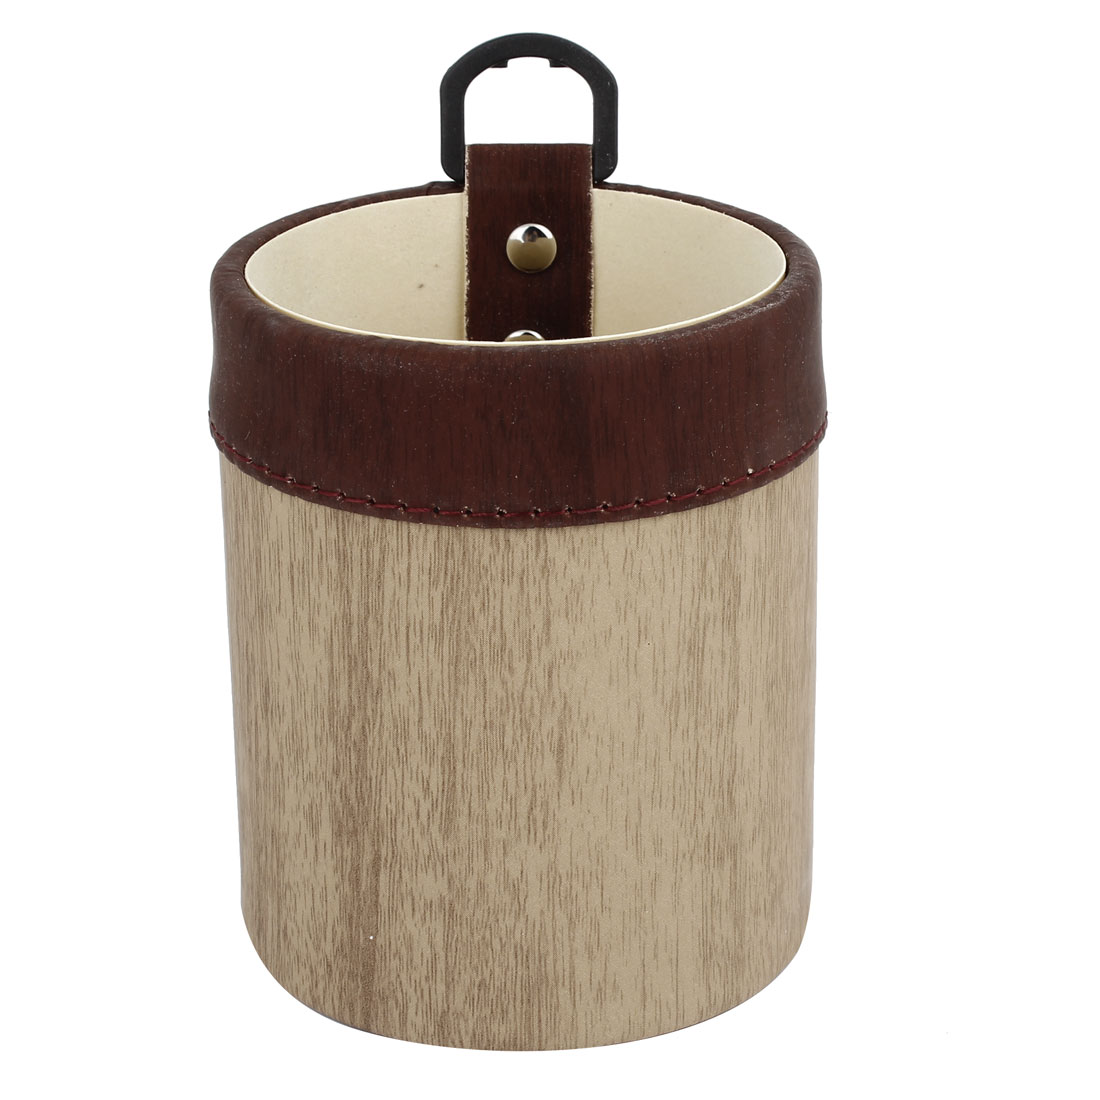 Khaki Brown Faux Leather Wood Grain Pattern Bottle Drink Can Holder w Clip for Auto Car Air Vent